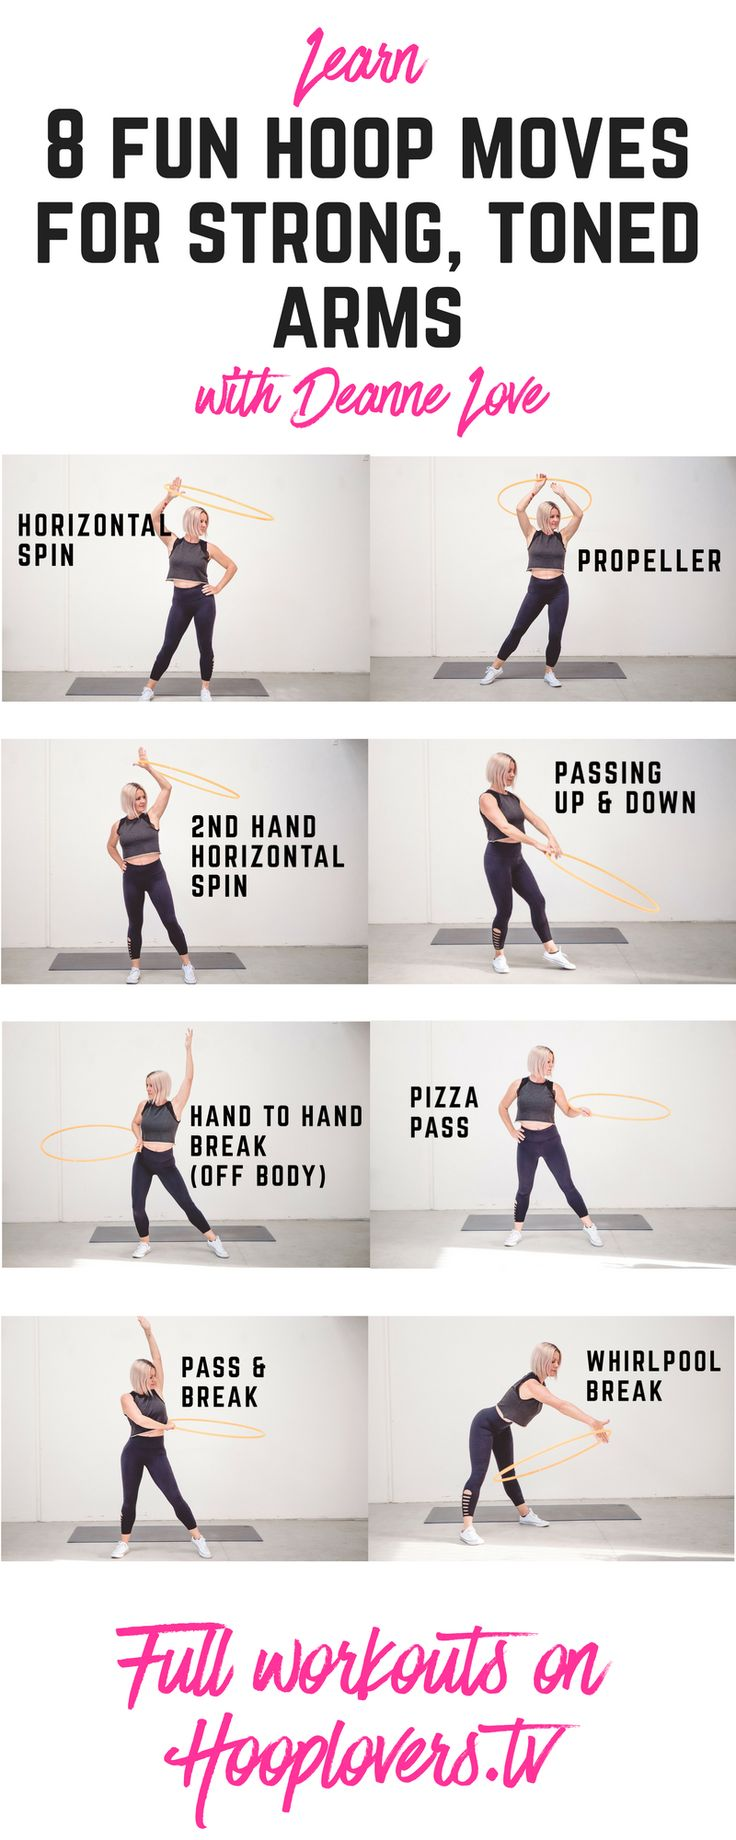 Strong is the new everything! And that is exactly what you are going to be feeling when you combine these hoop dance moves with the weight of your spinning hoop.